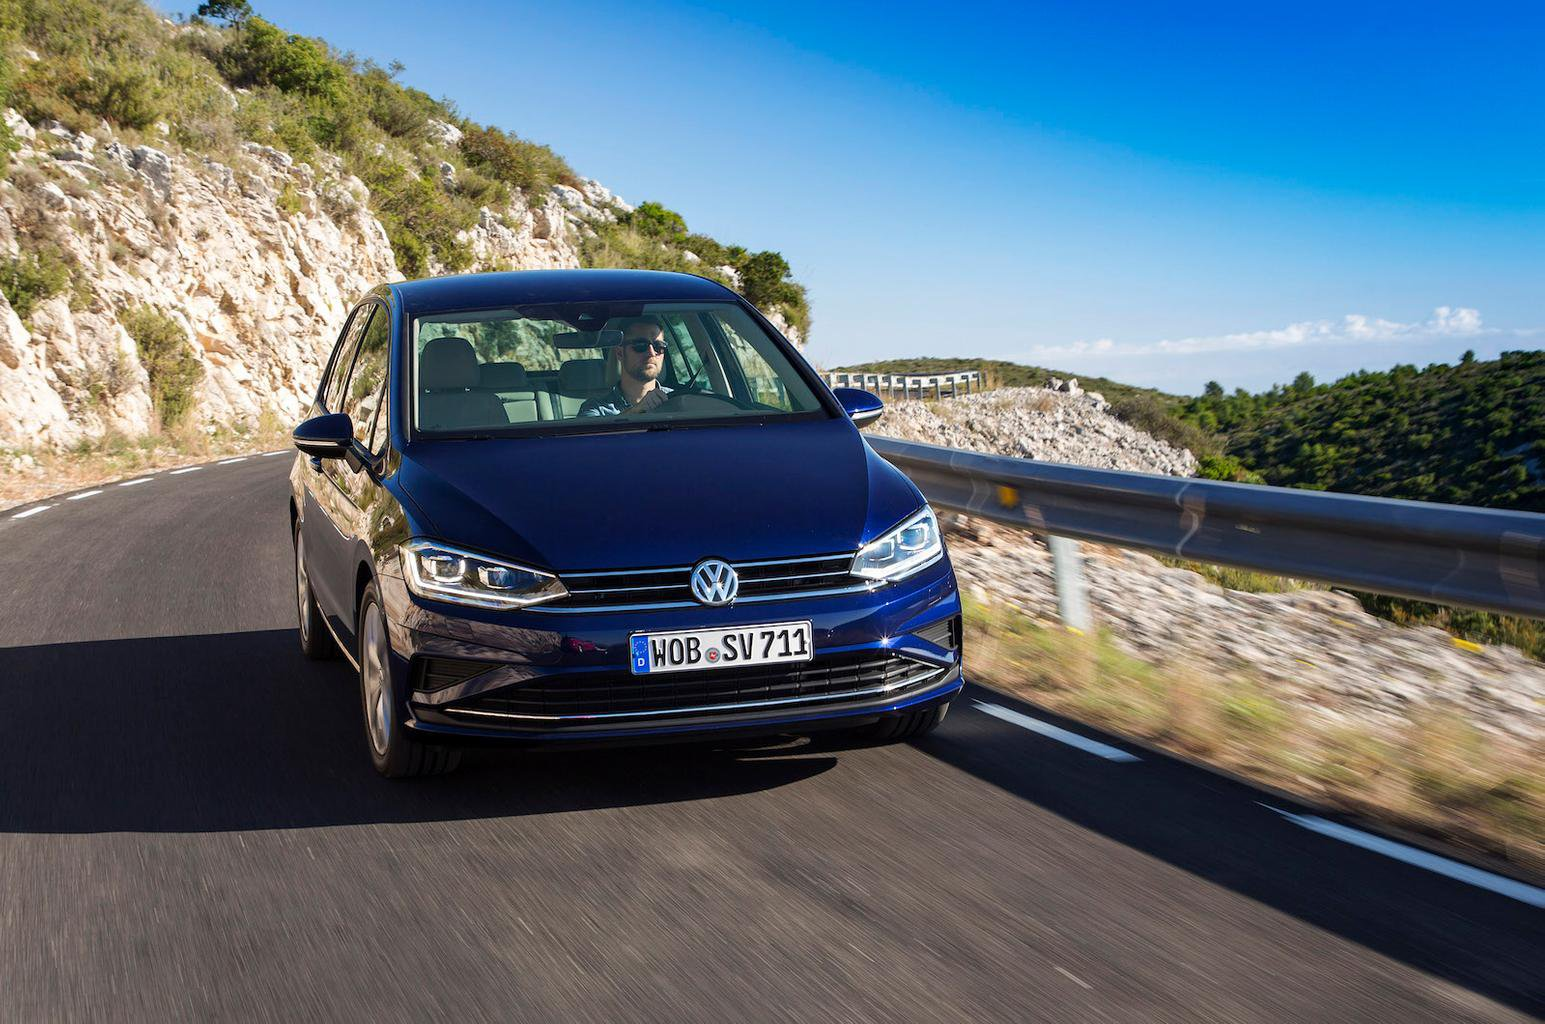 2017 Volkswagen Golf SV review - price, specs and release date